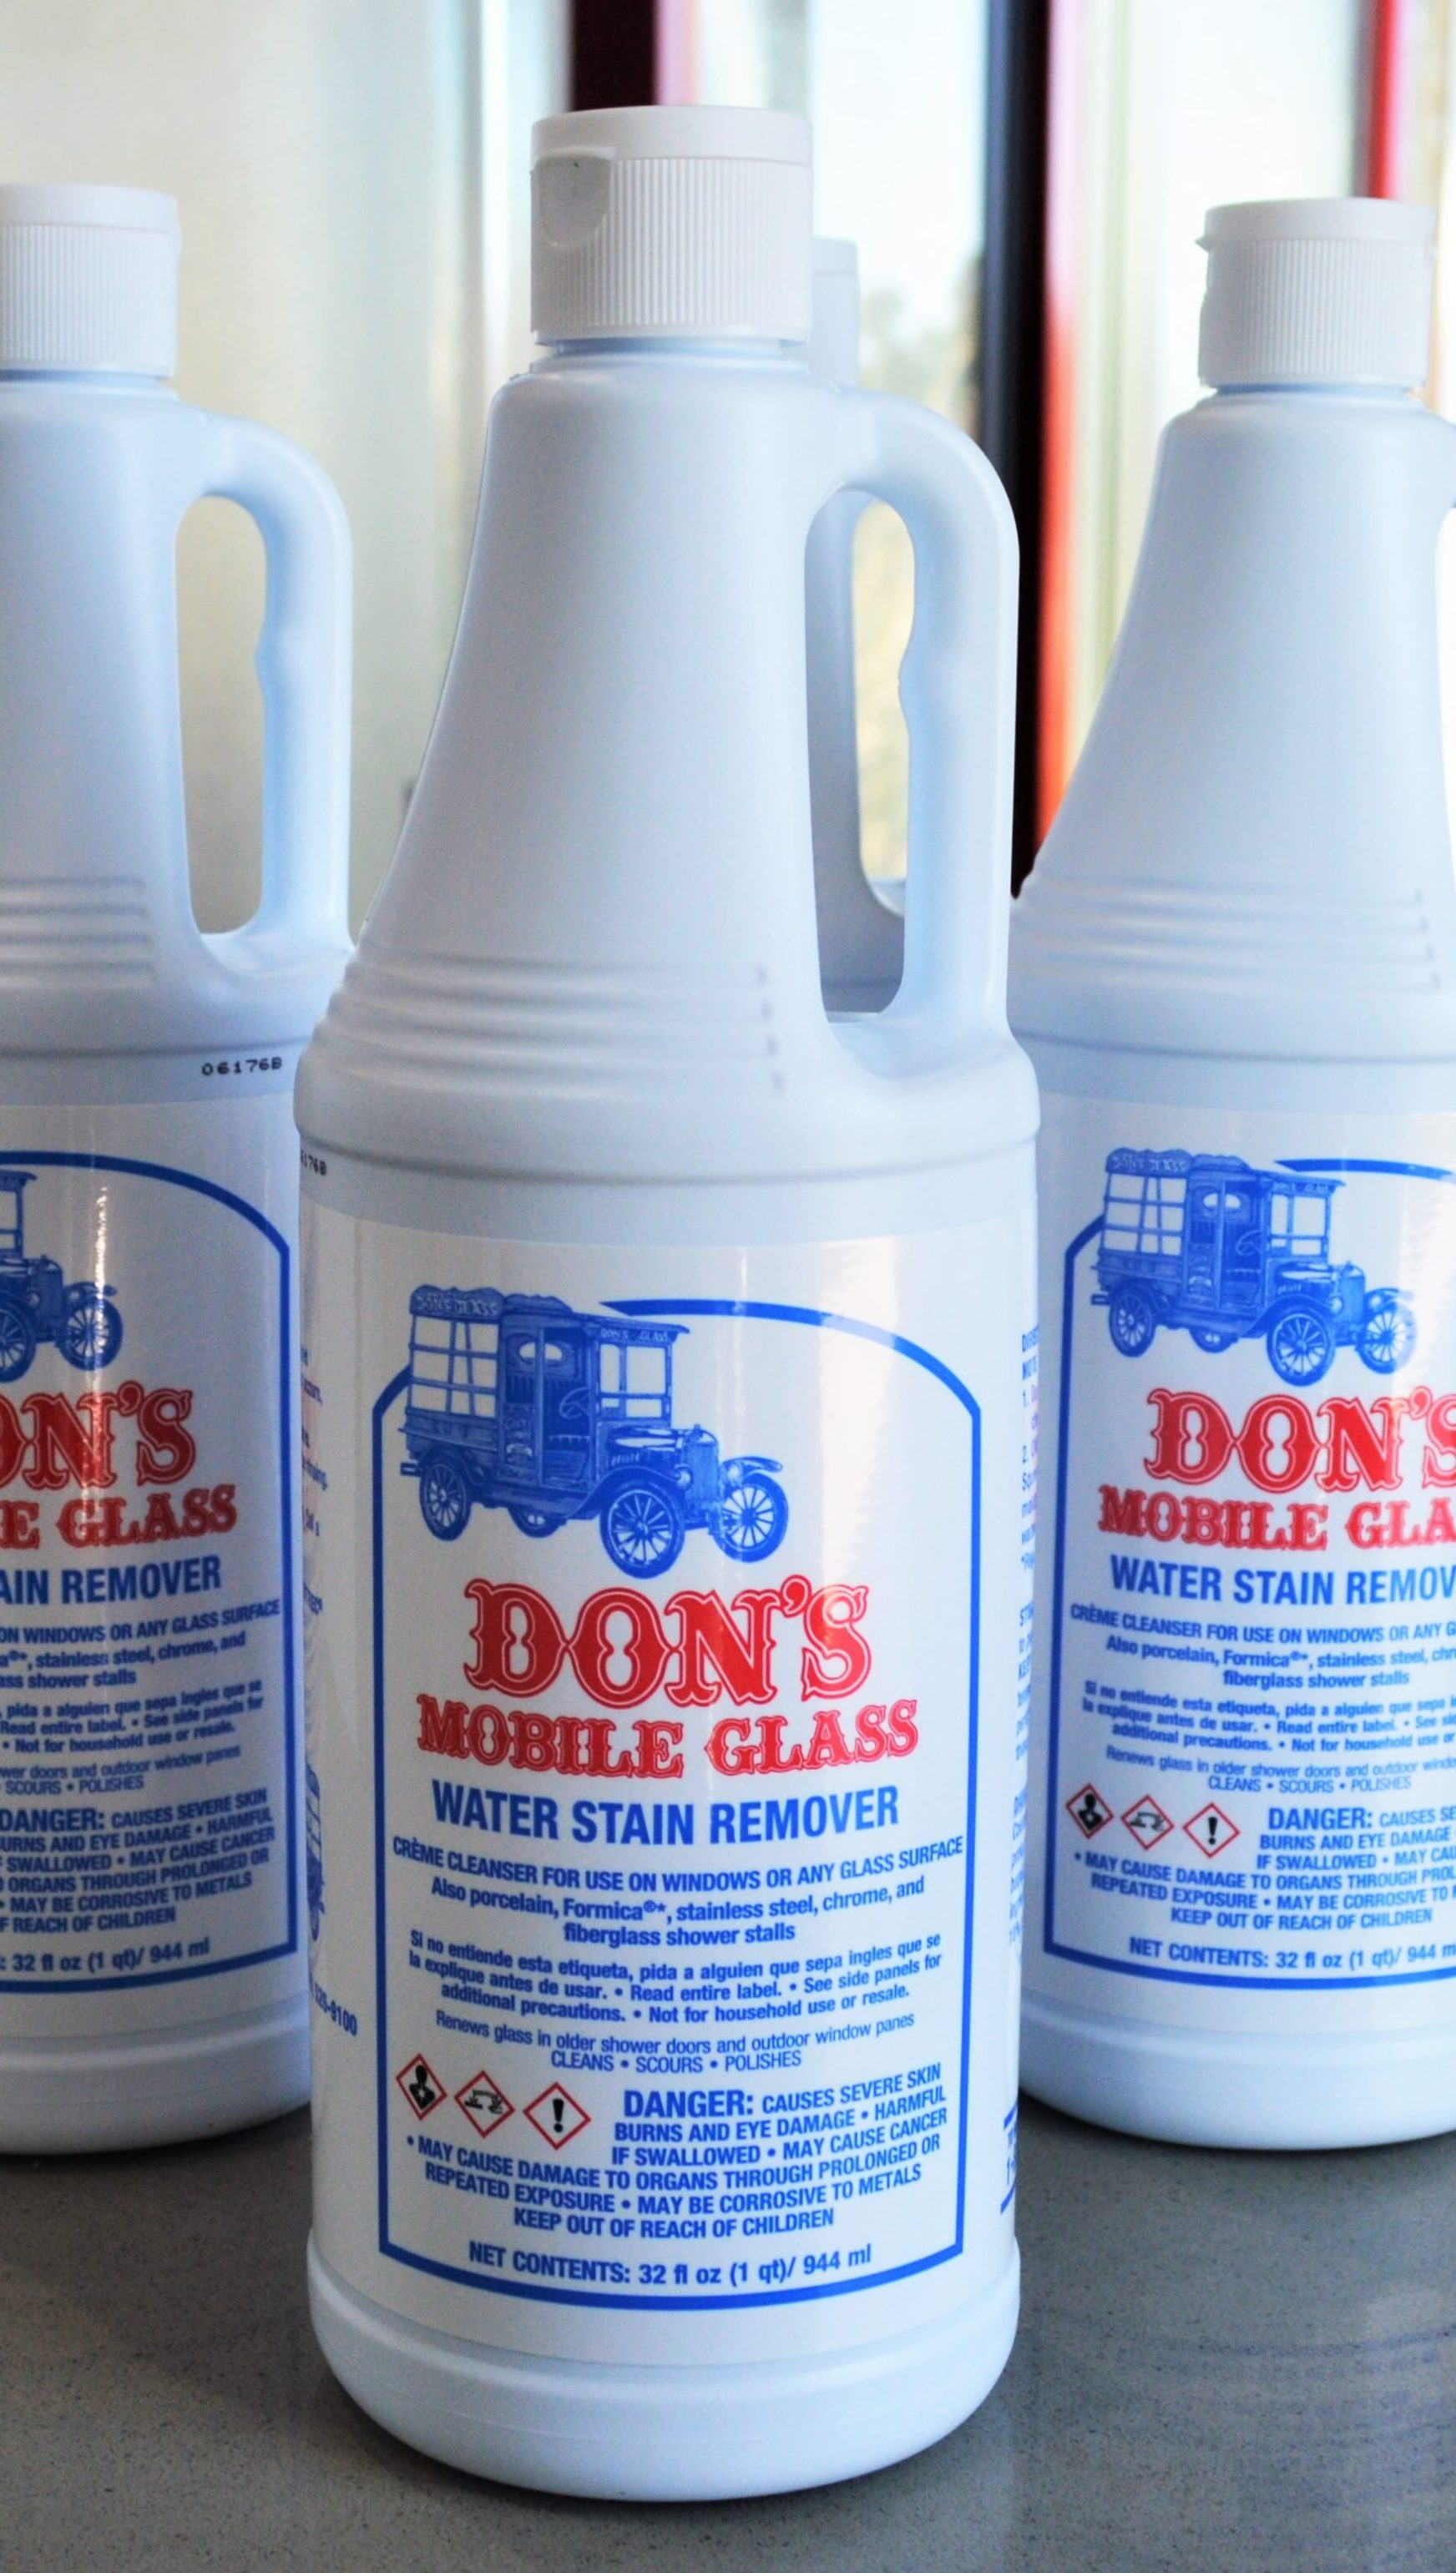 Dons Mobile Glass Professional Water Stain Remover 6 32oz Bottles